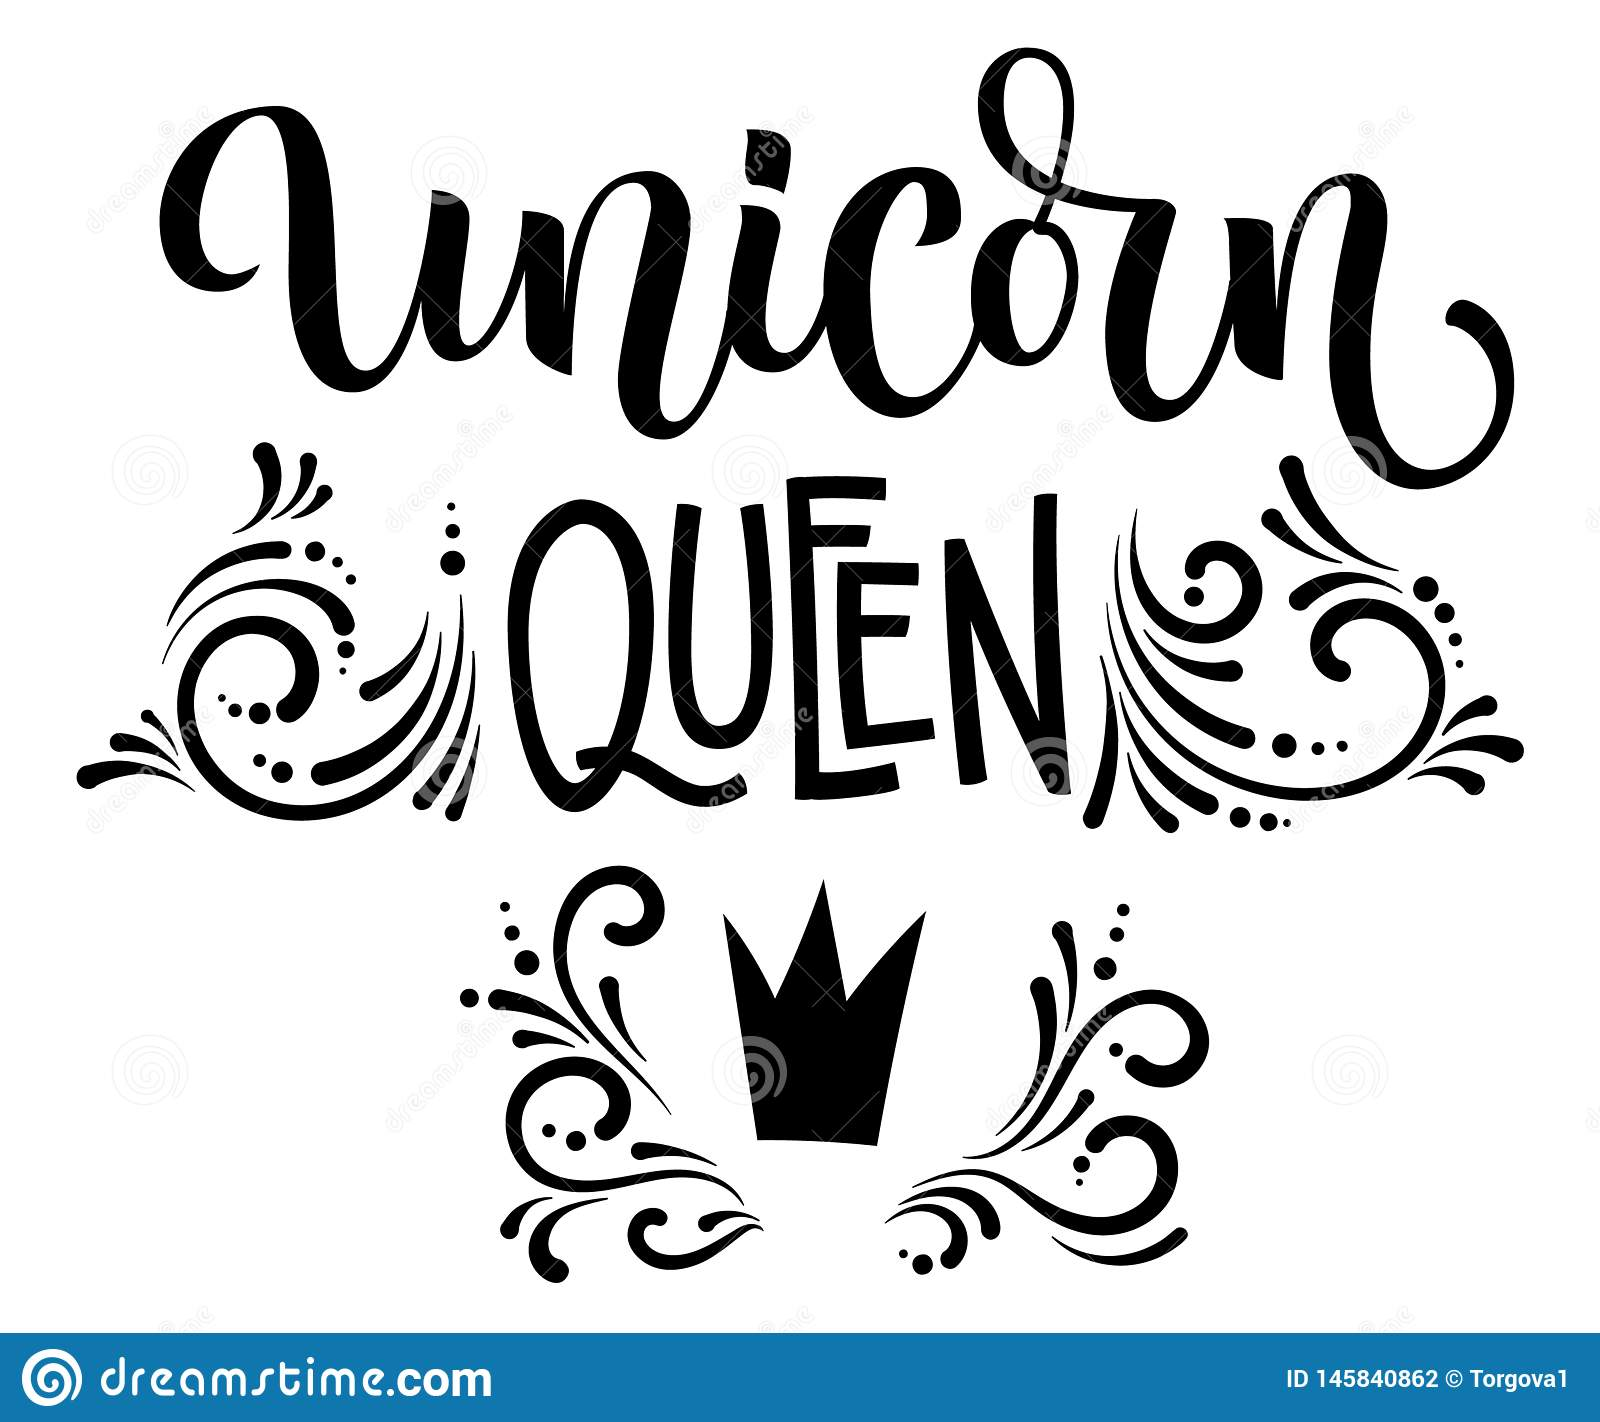 Unicorn Queen hand drawn moderm isolated calligraphy text with splashes, crawn decor